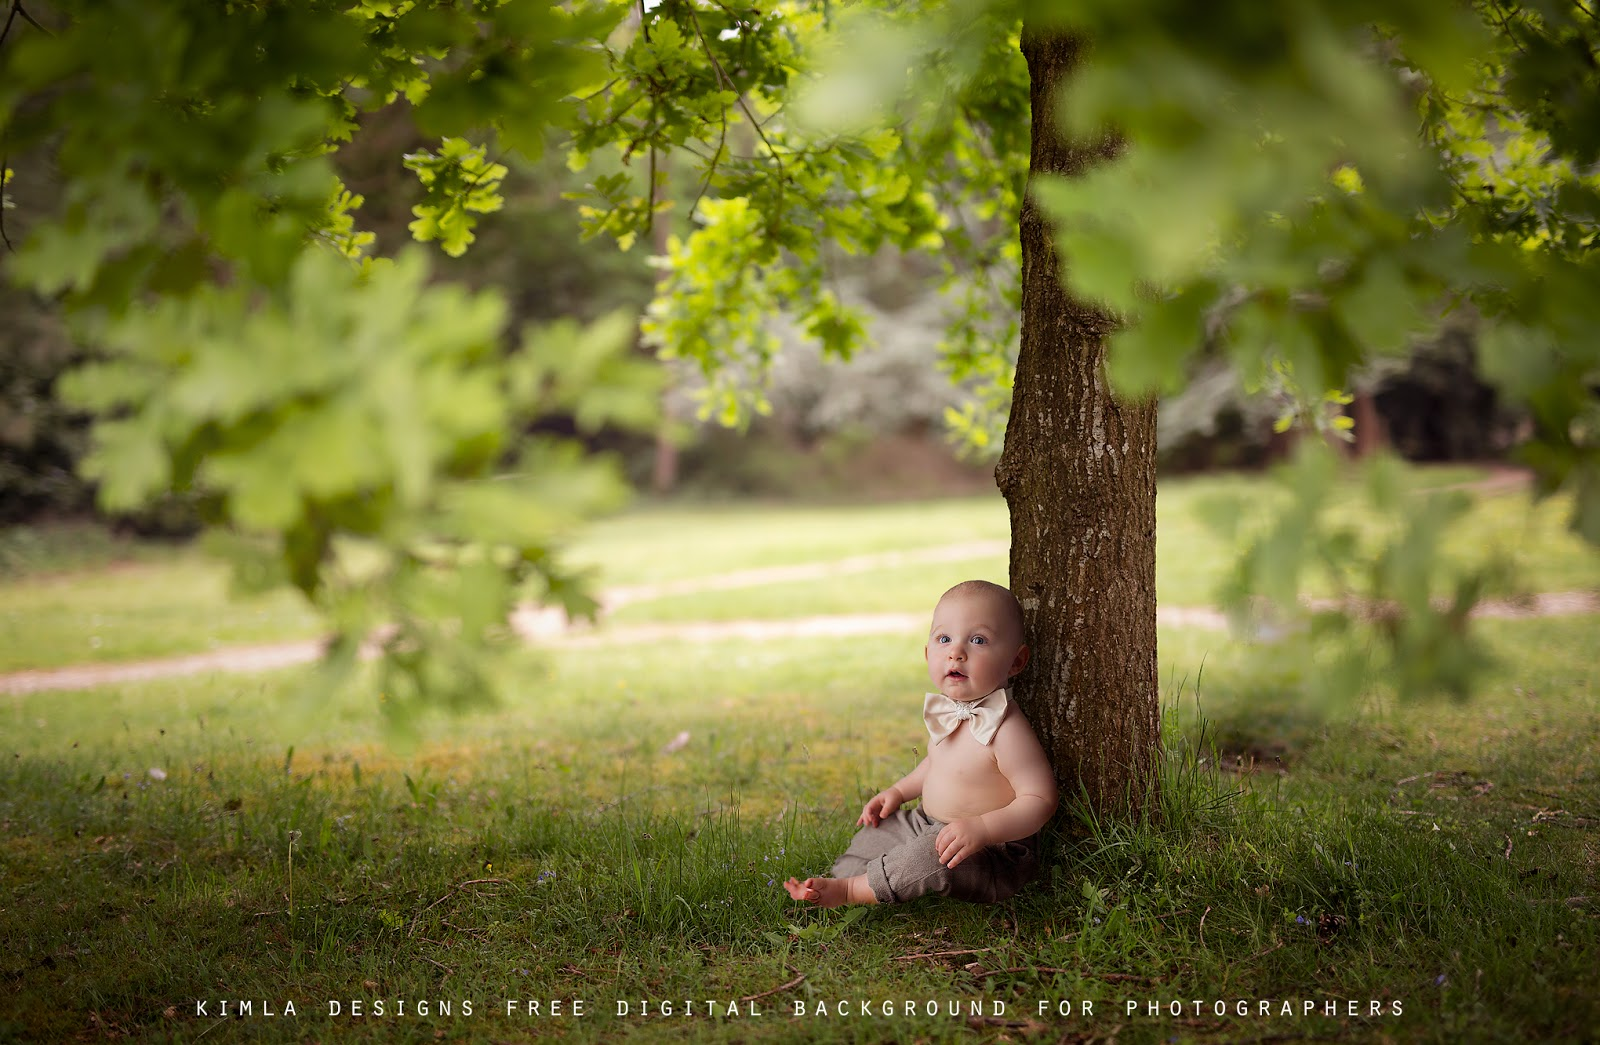 Free Summer Digital Background for Photographers